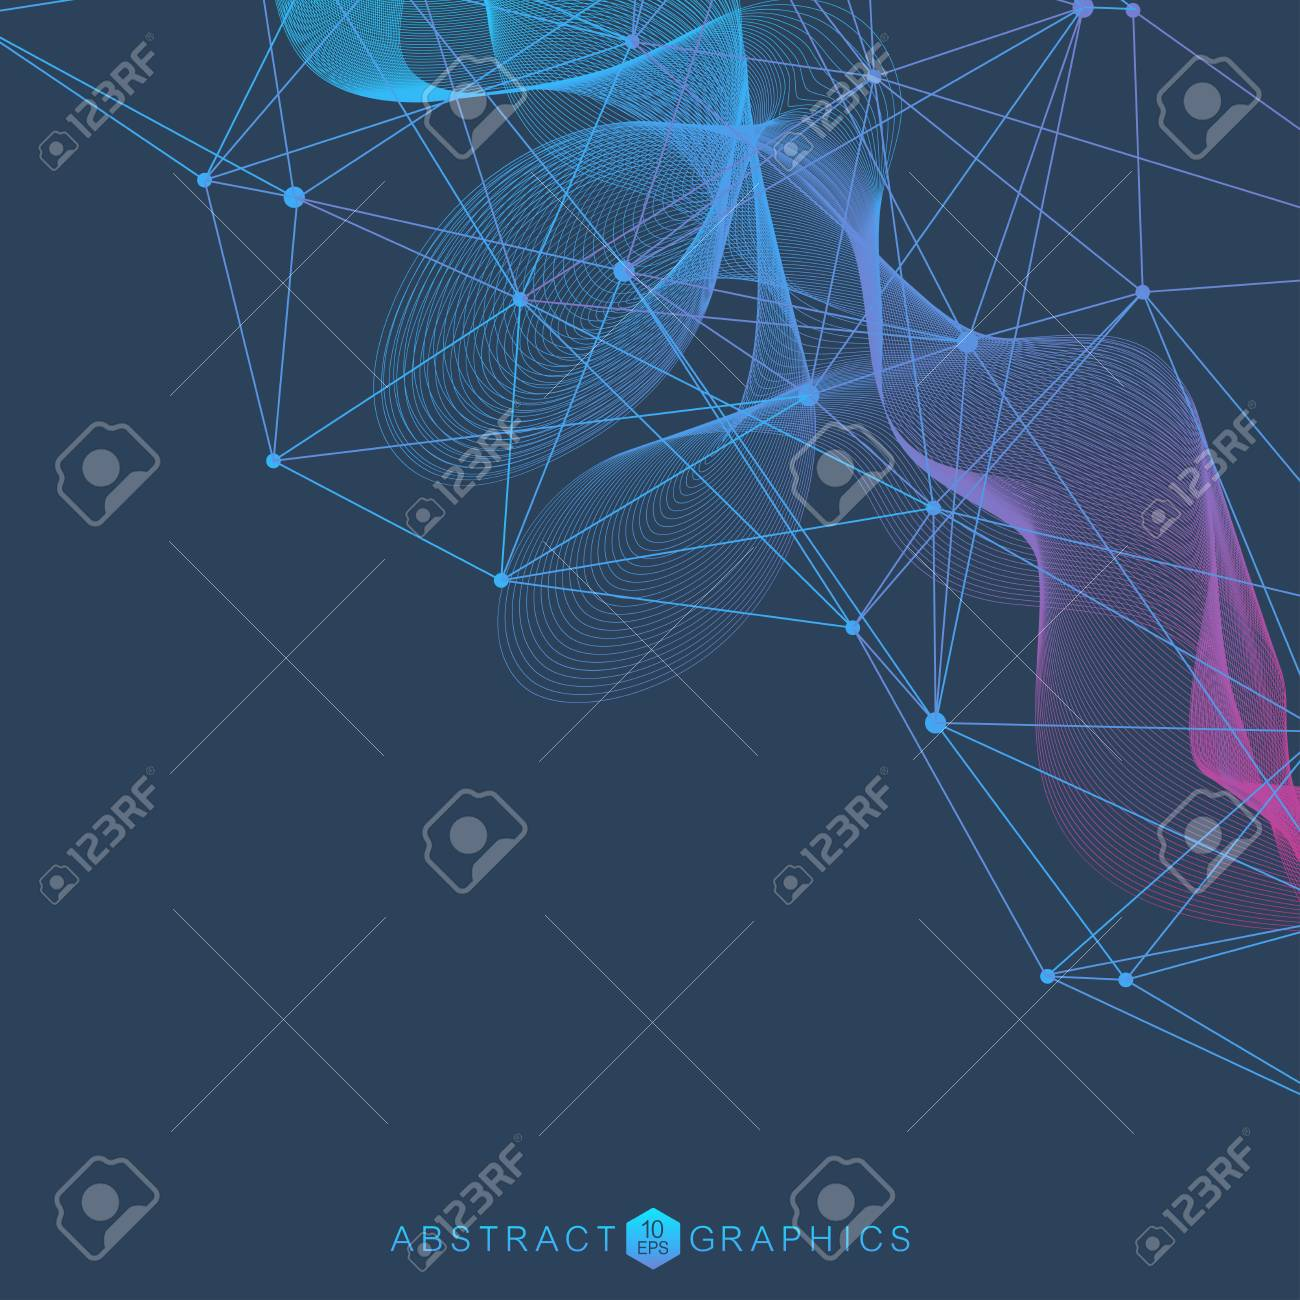 Geometric abstract background with connected line and dots. Structure molecule and communication. Scientific concept for your design. Medical, technology, science background. Vector illustration. - 100776755